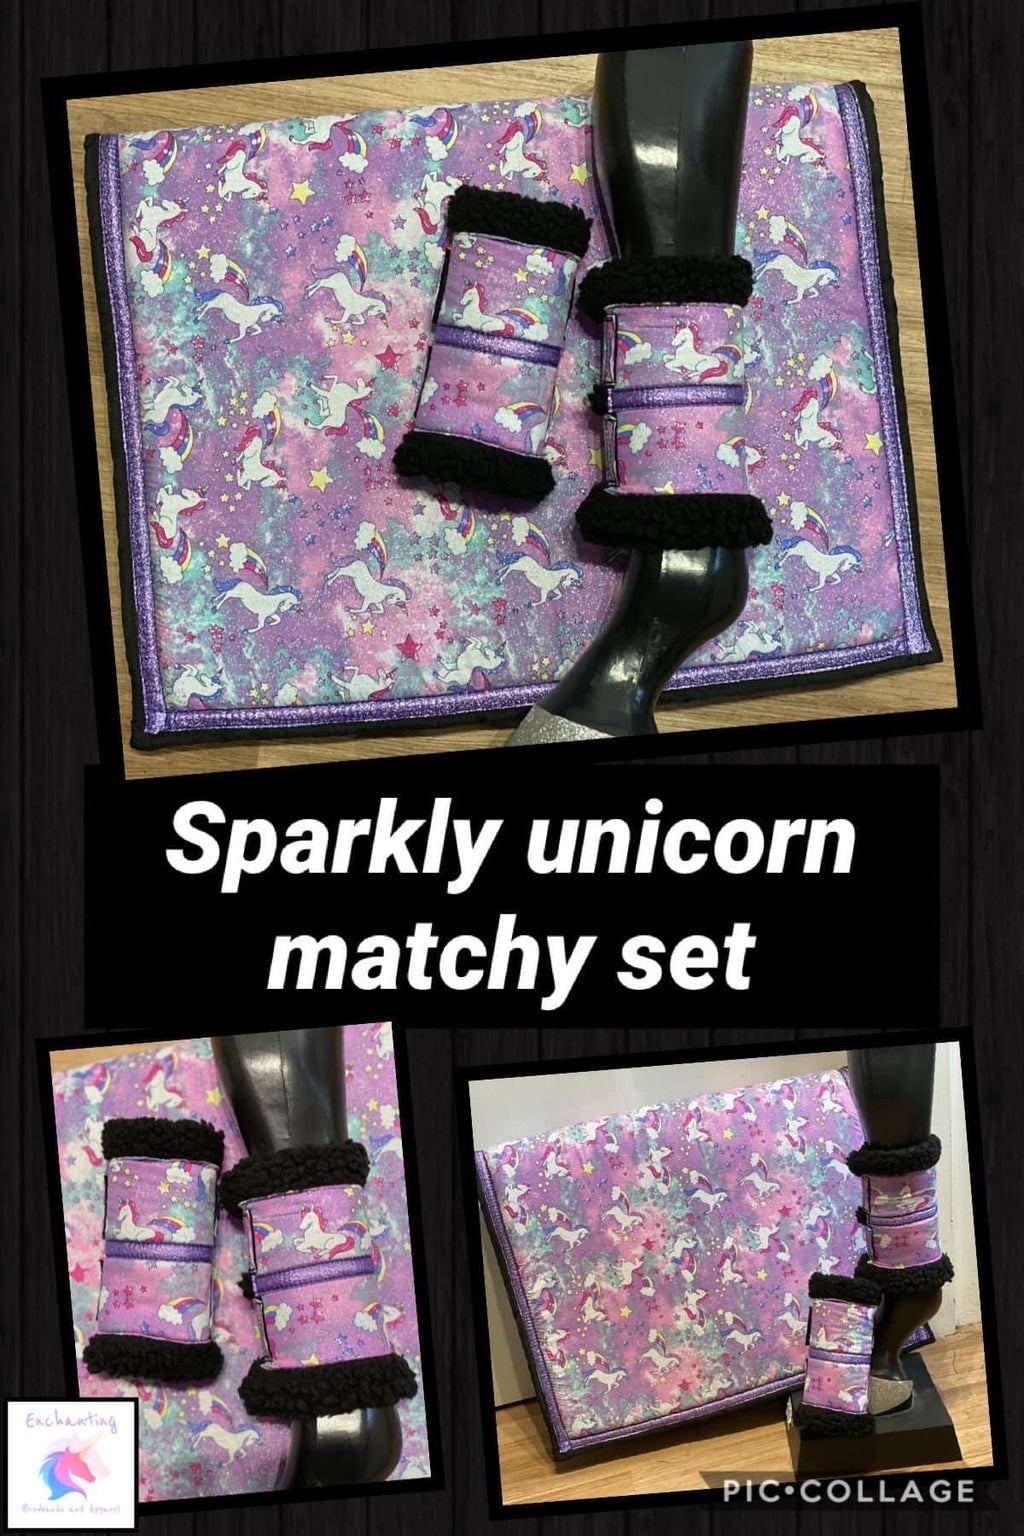 Unicorn sparkly matchy set